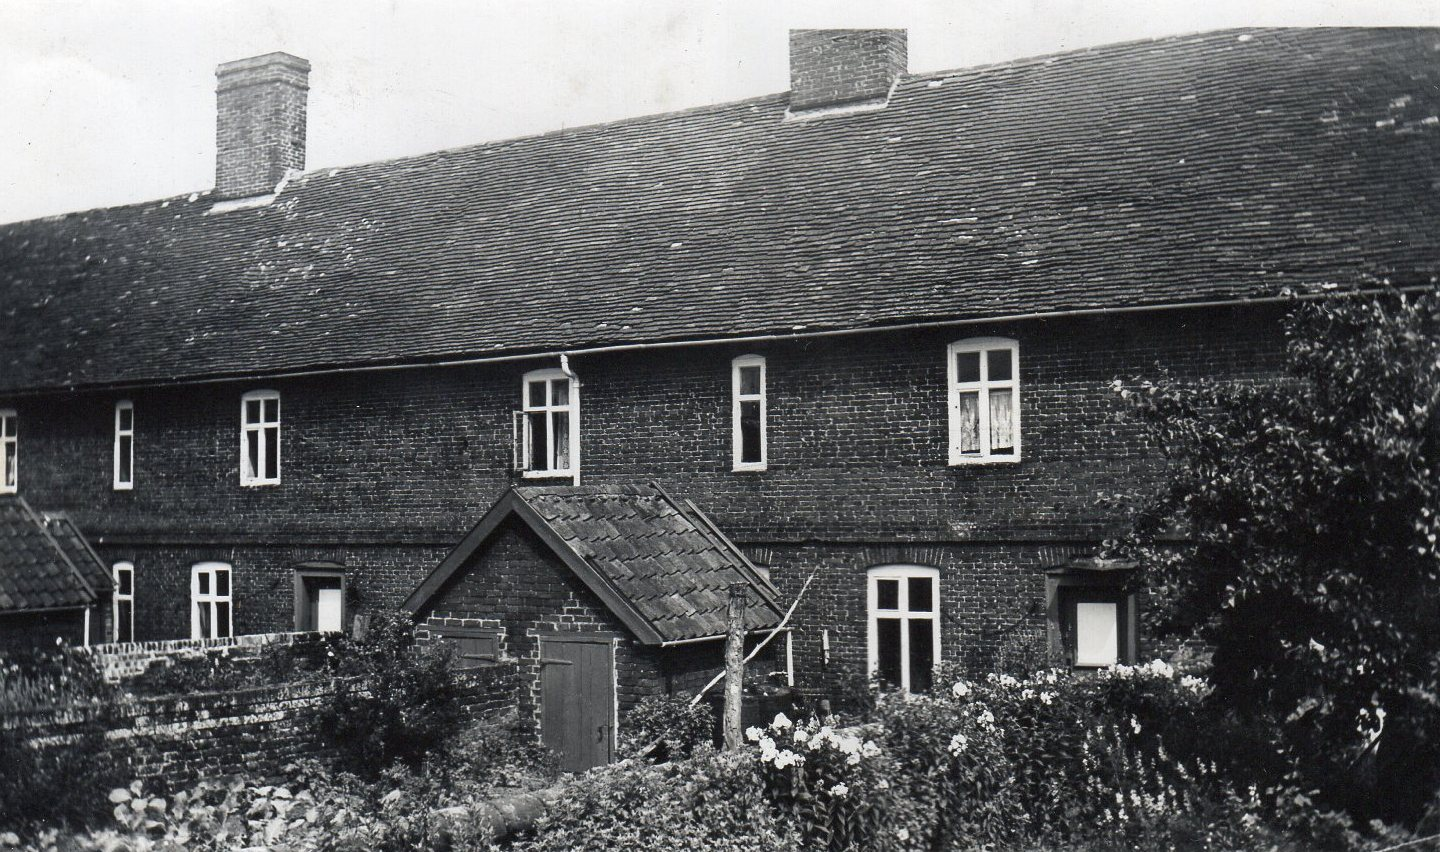 Thomas Mills almshouse